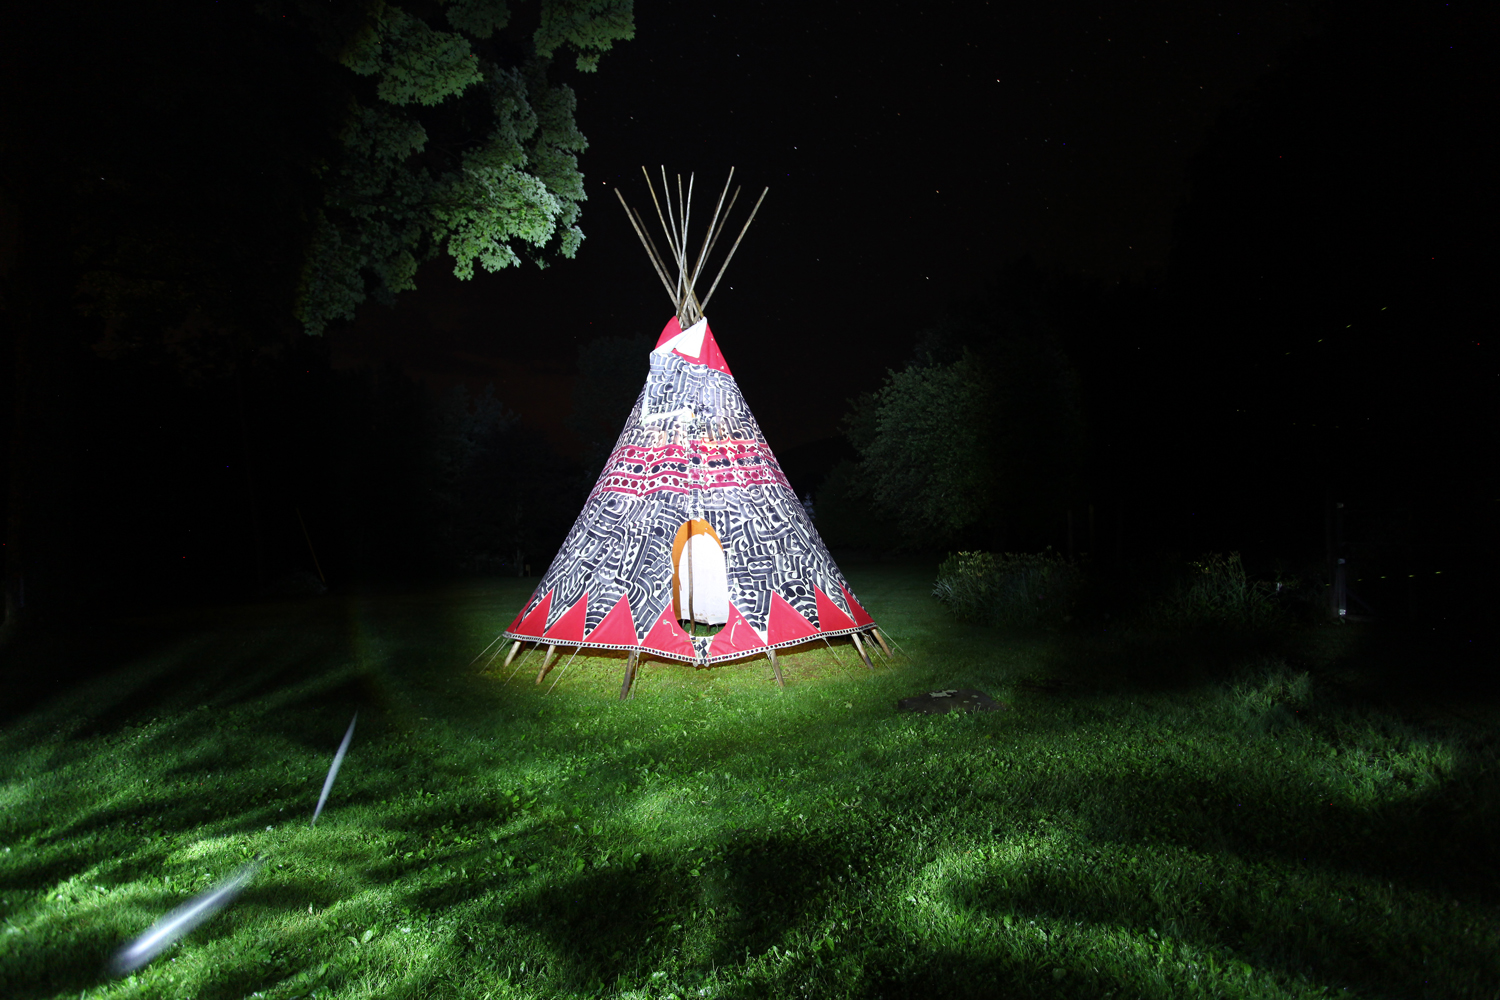 installation view, Teepee commission for  Breathe Inn , Lanesville, New York, 2013